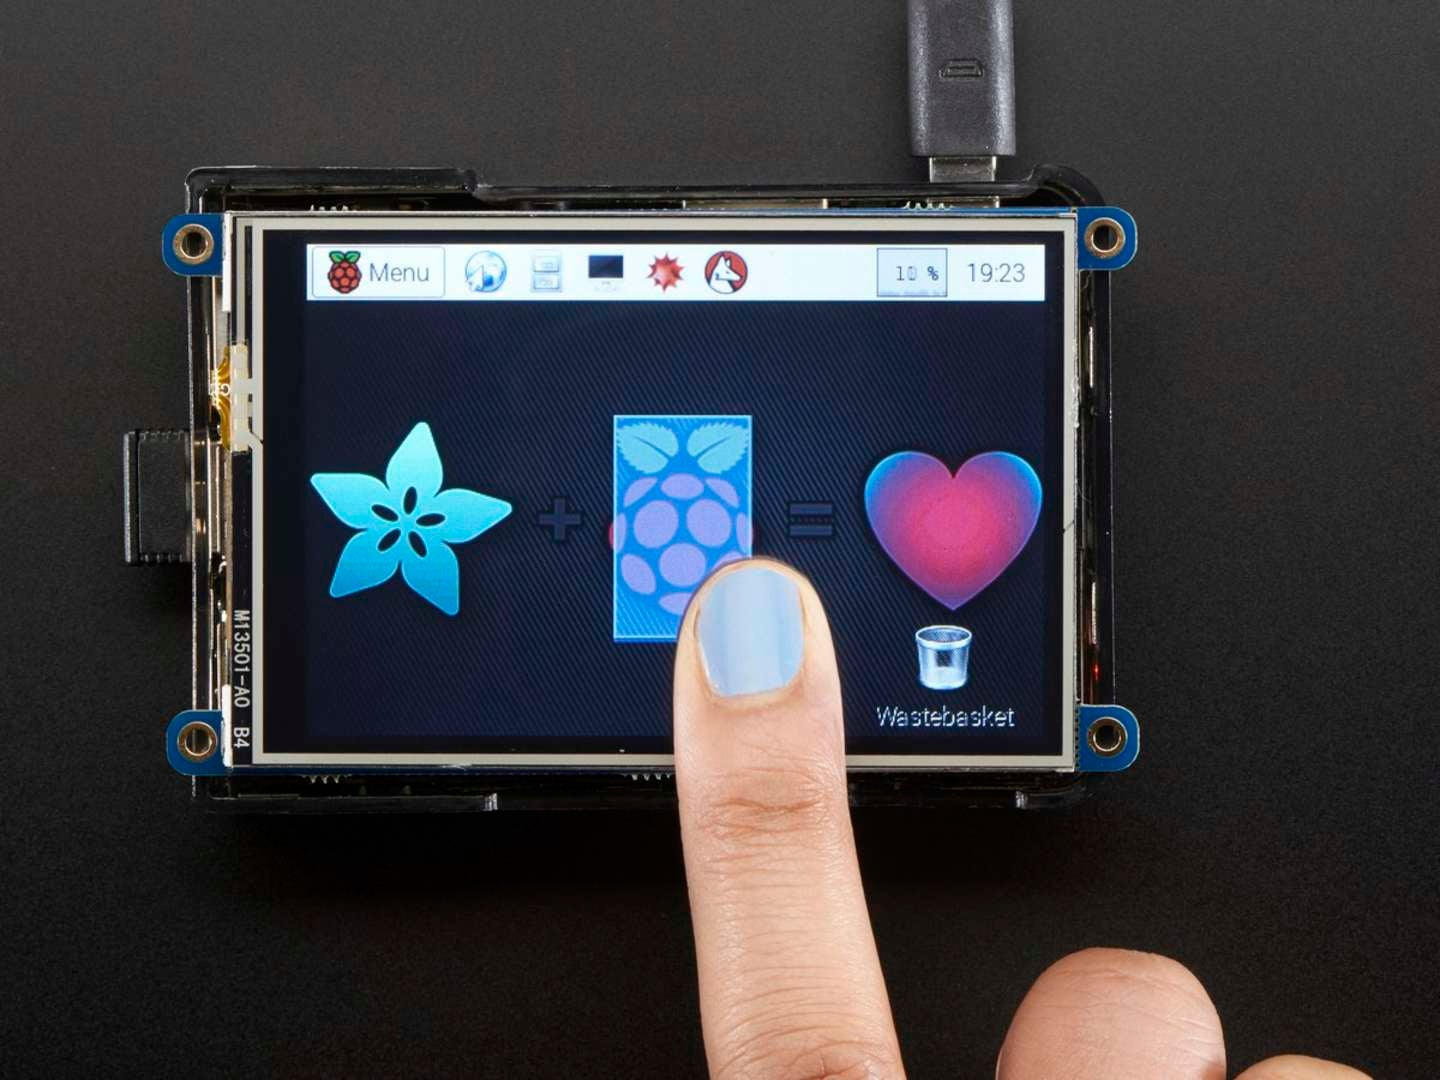 Adafruit PiTFT Plus touchscreen